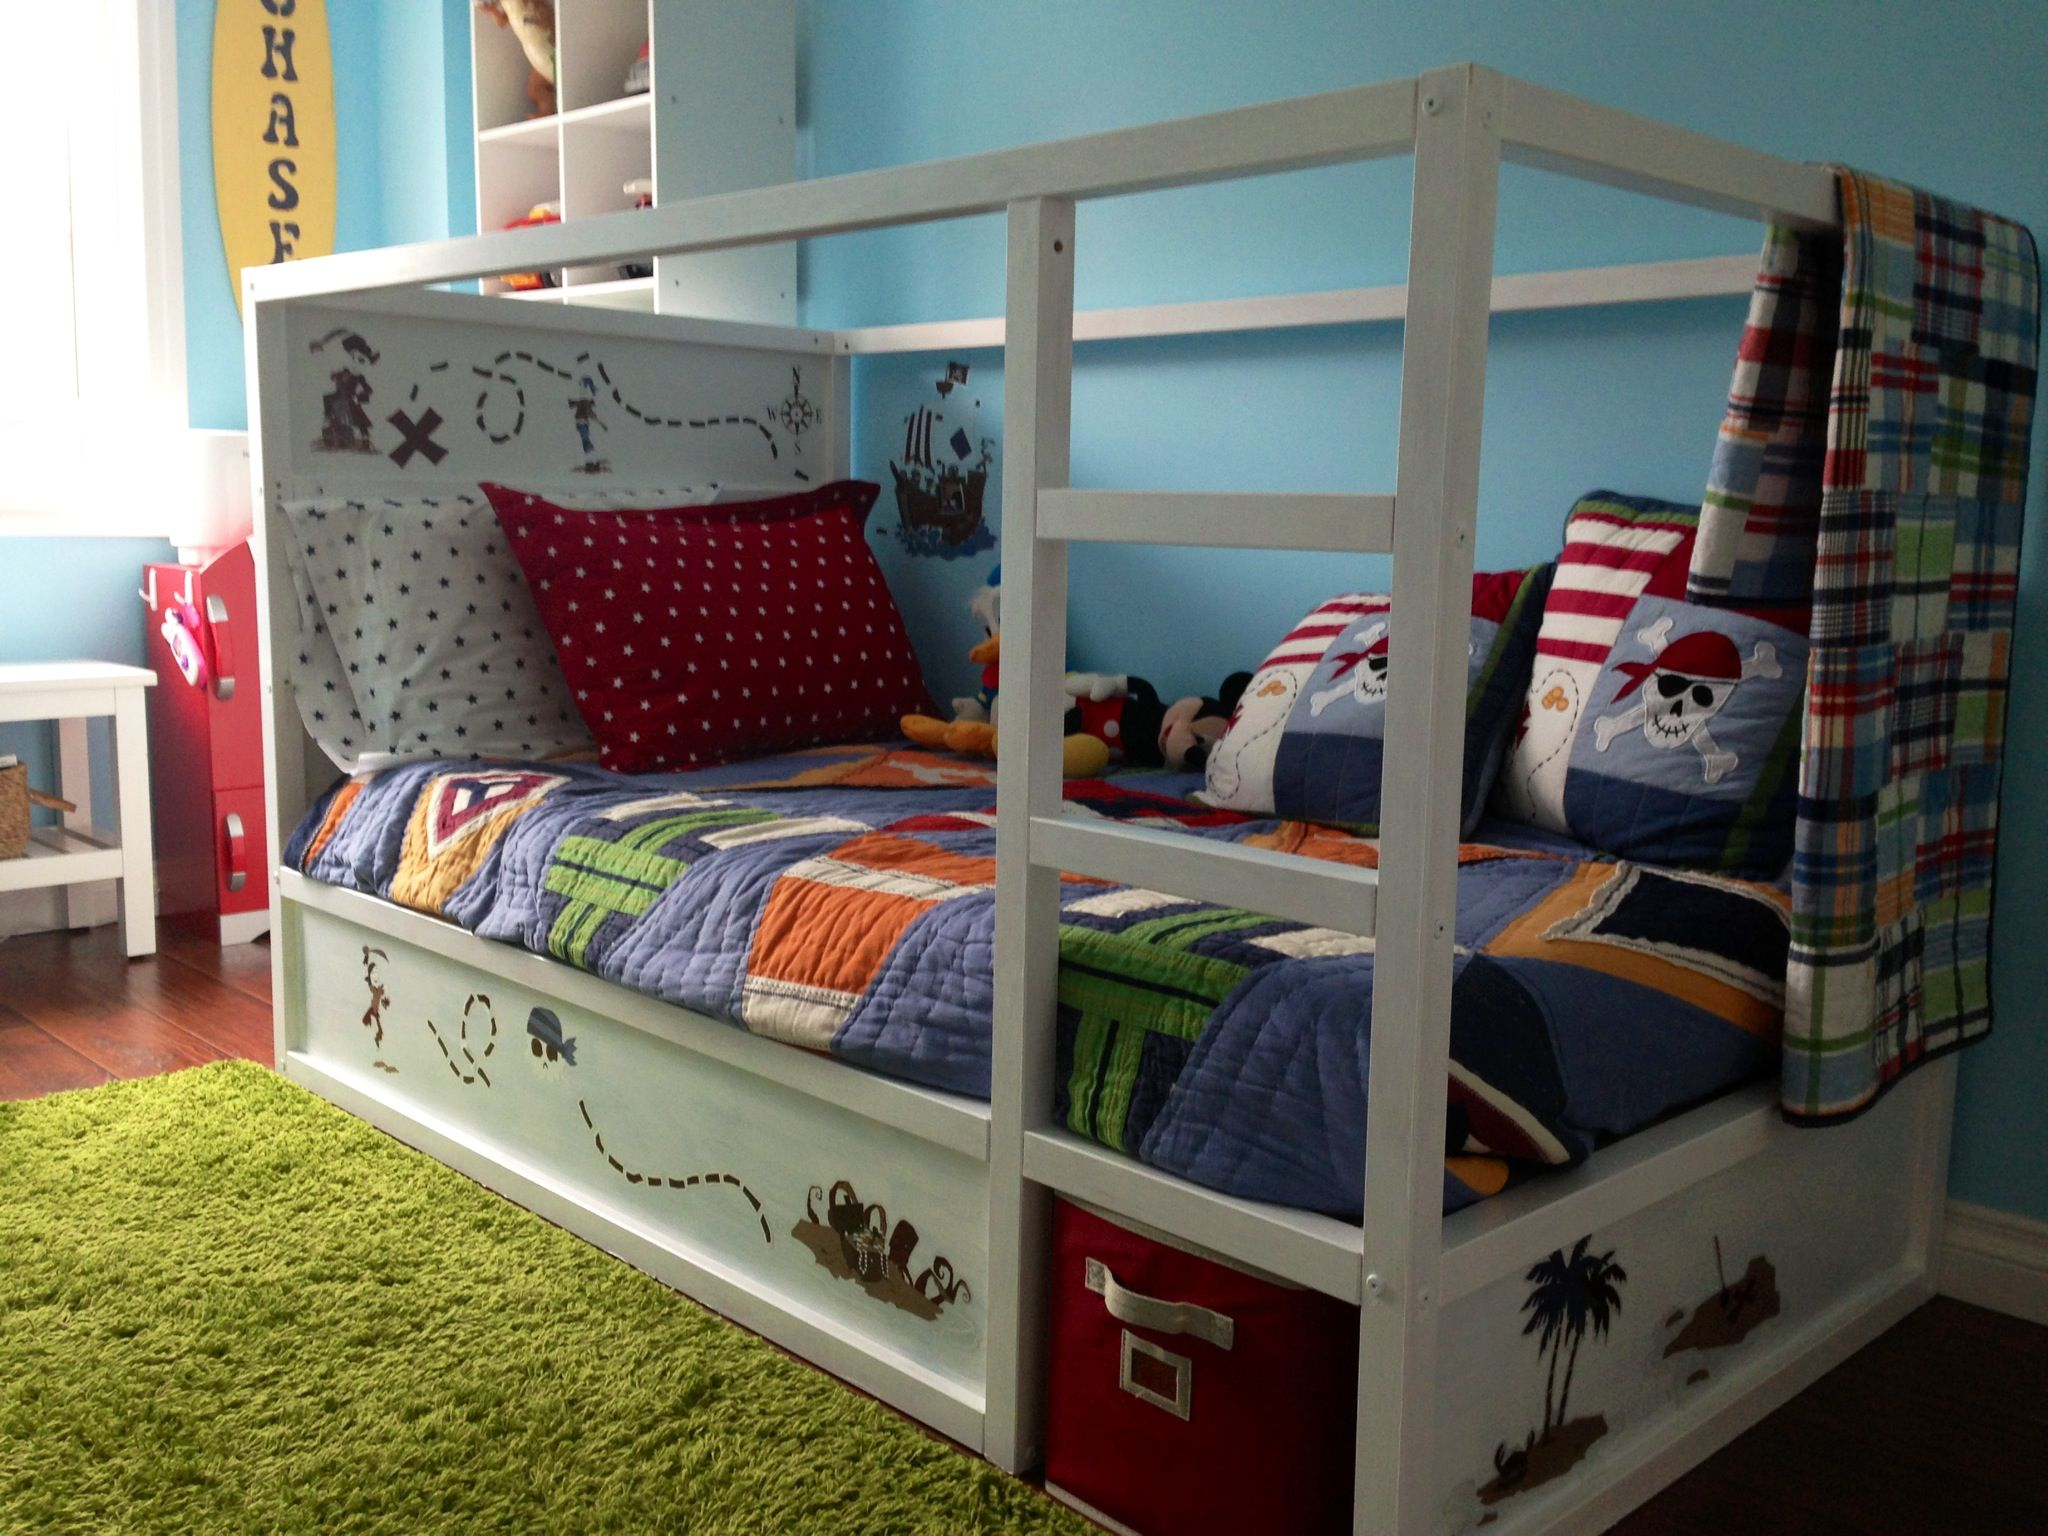 Pirate Bedroom Furniture 38 Best Images About Pirate Theme Bedroom On Pinterest Pirate